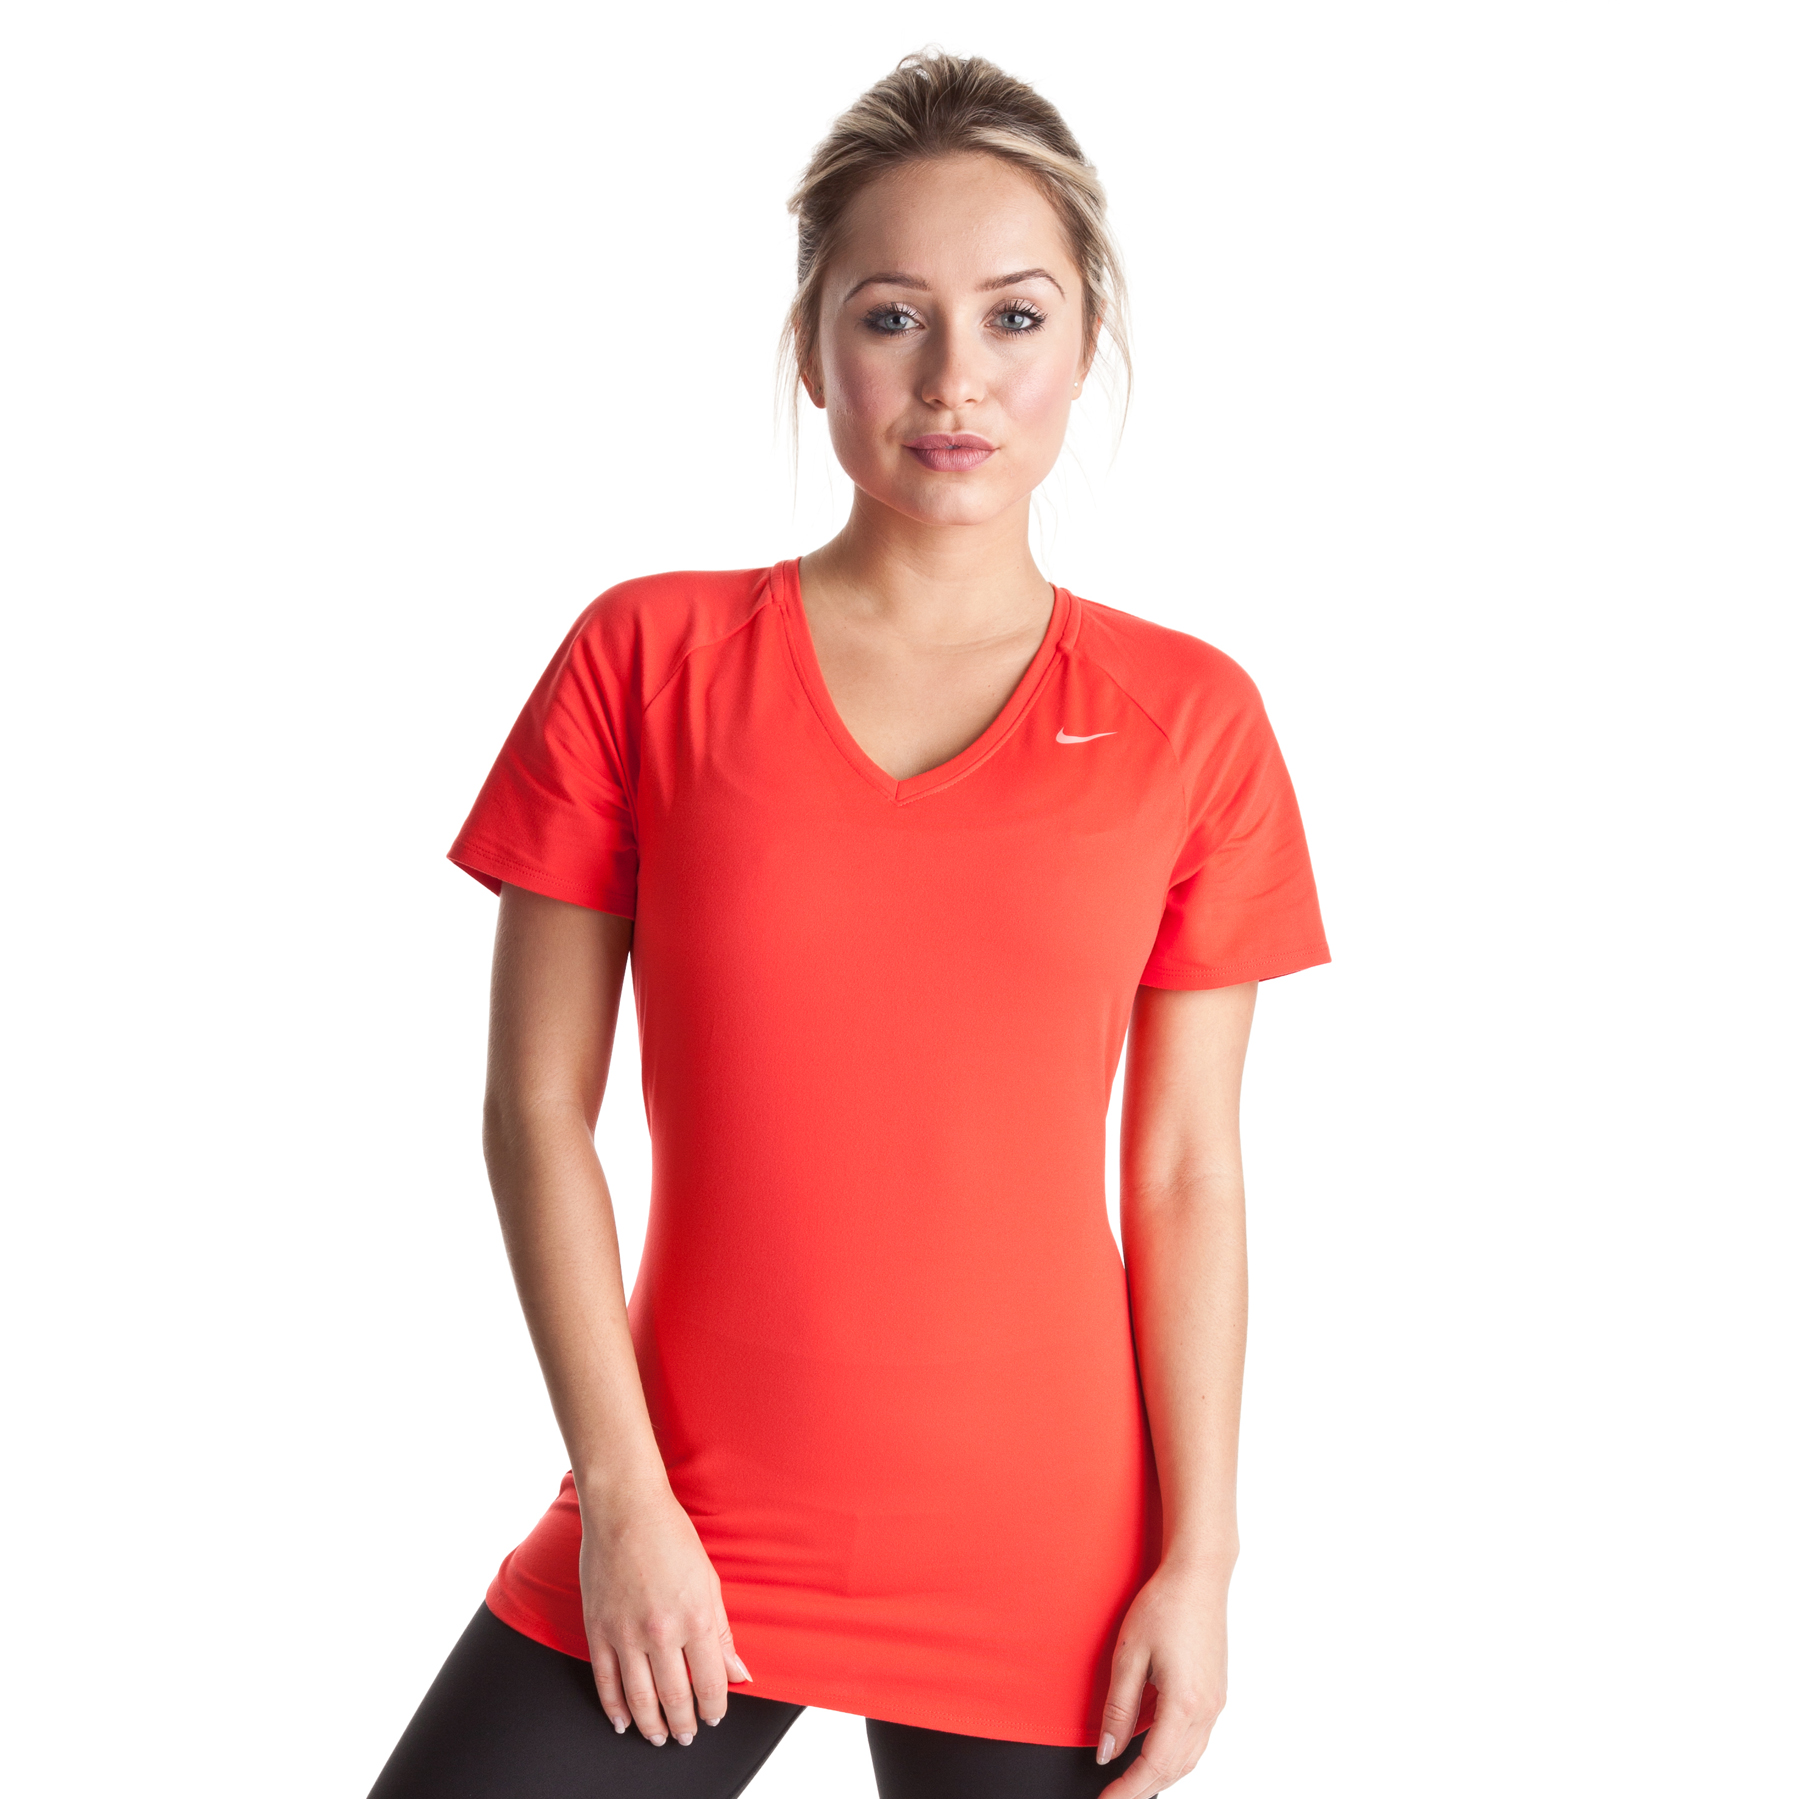 Nike Regular Club Short Sleeve Baselayer - Sunburst/Bright Peach - Womens